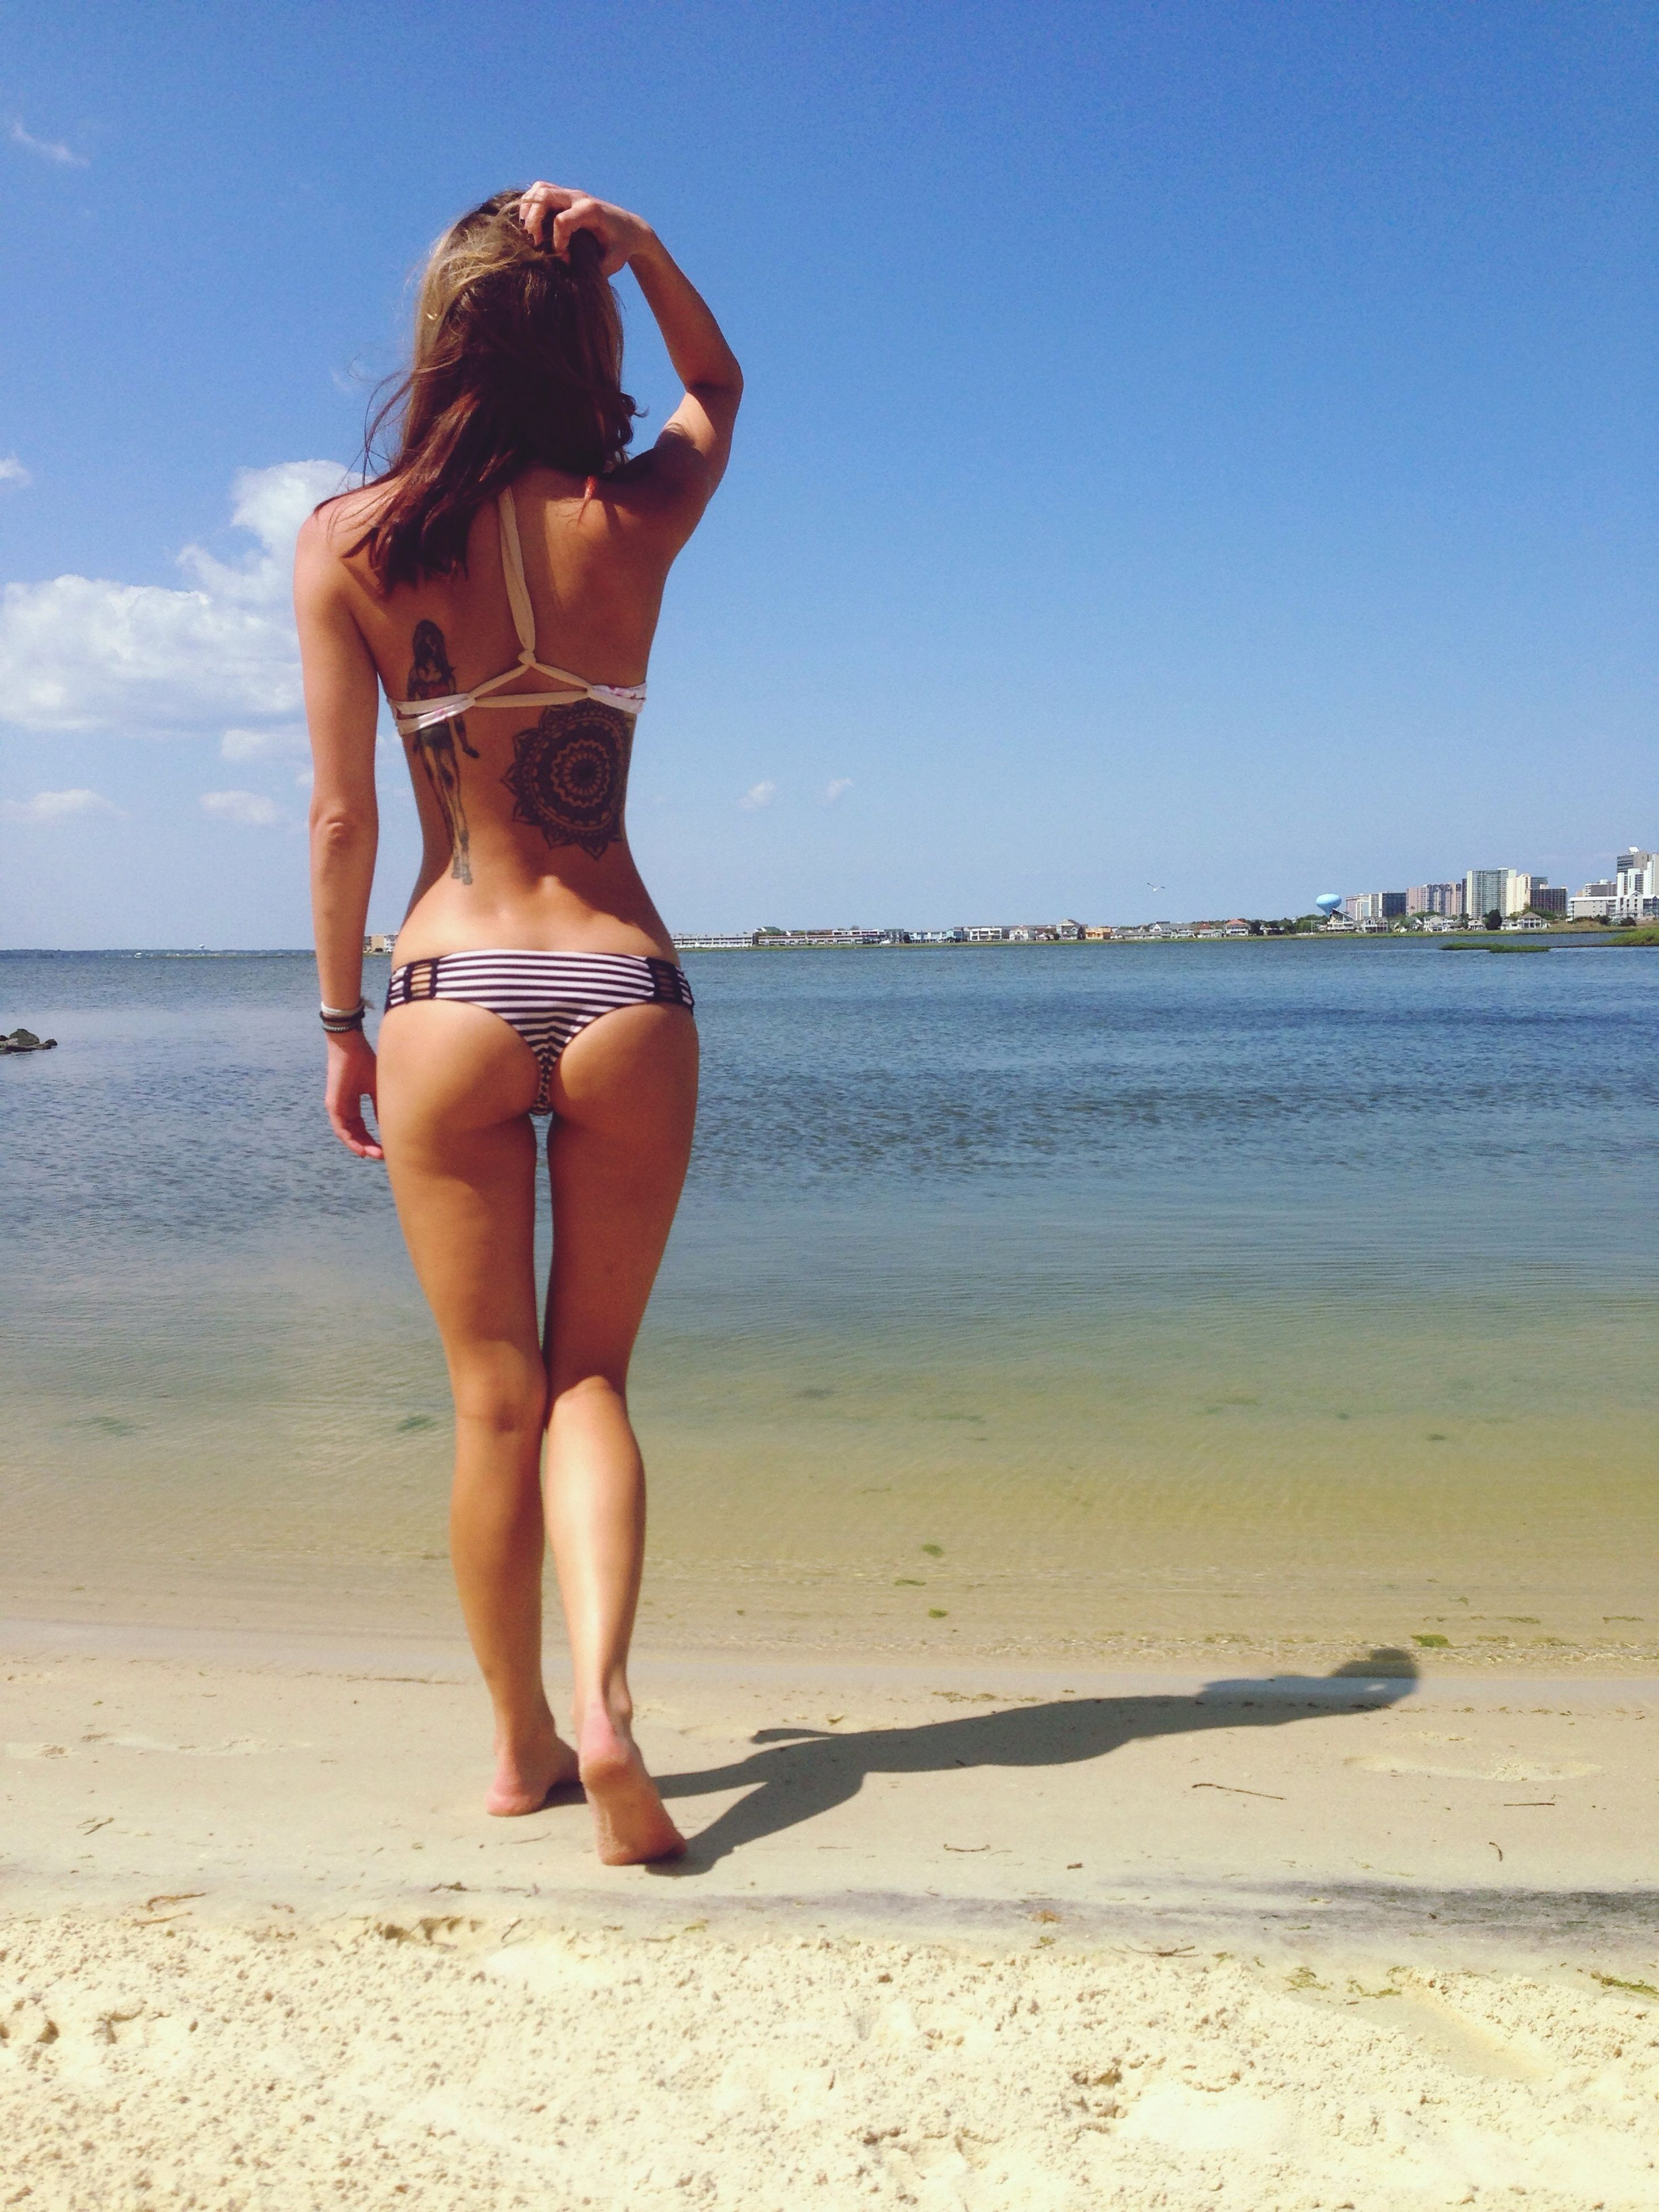 beach, sea, sand, water, shore, horizon over water, young adult, lifestyles, leisure activity, vacations, full length, clear sky, sky, summer, young women, standing, sunlight, bikini